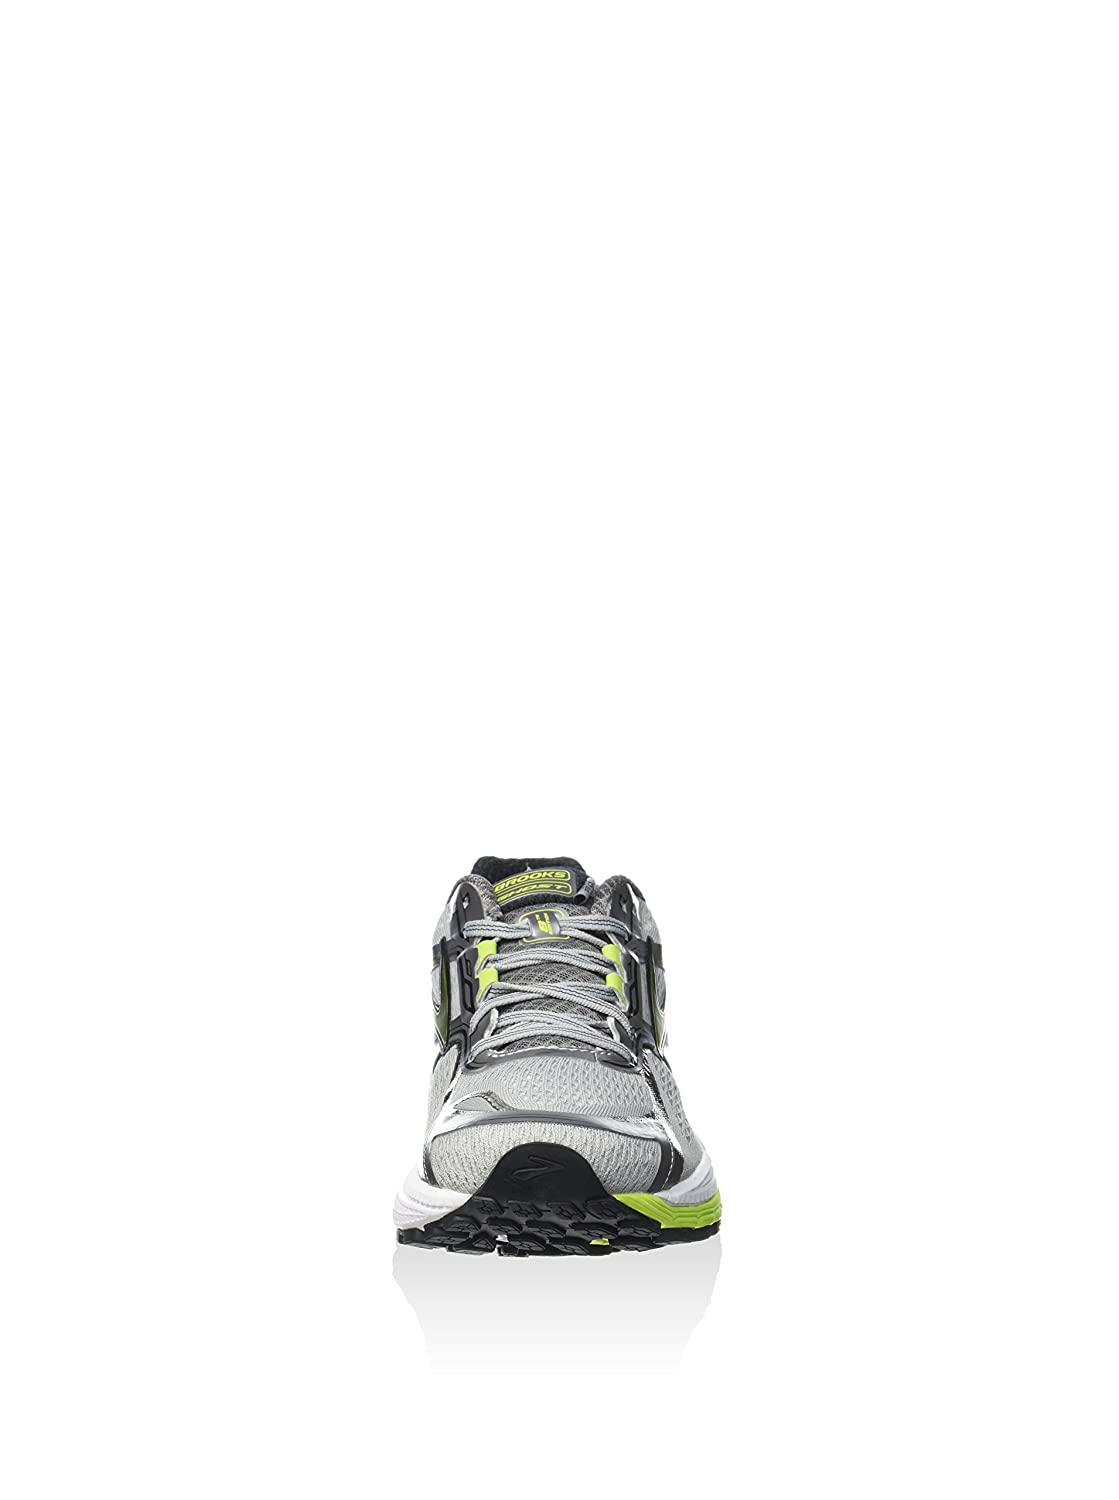 9.5 B Narrow Brooks Mens Ghost 8 Metallic Charcoal//Lime Punch//Silver Running Shoe